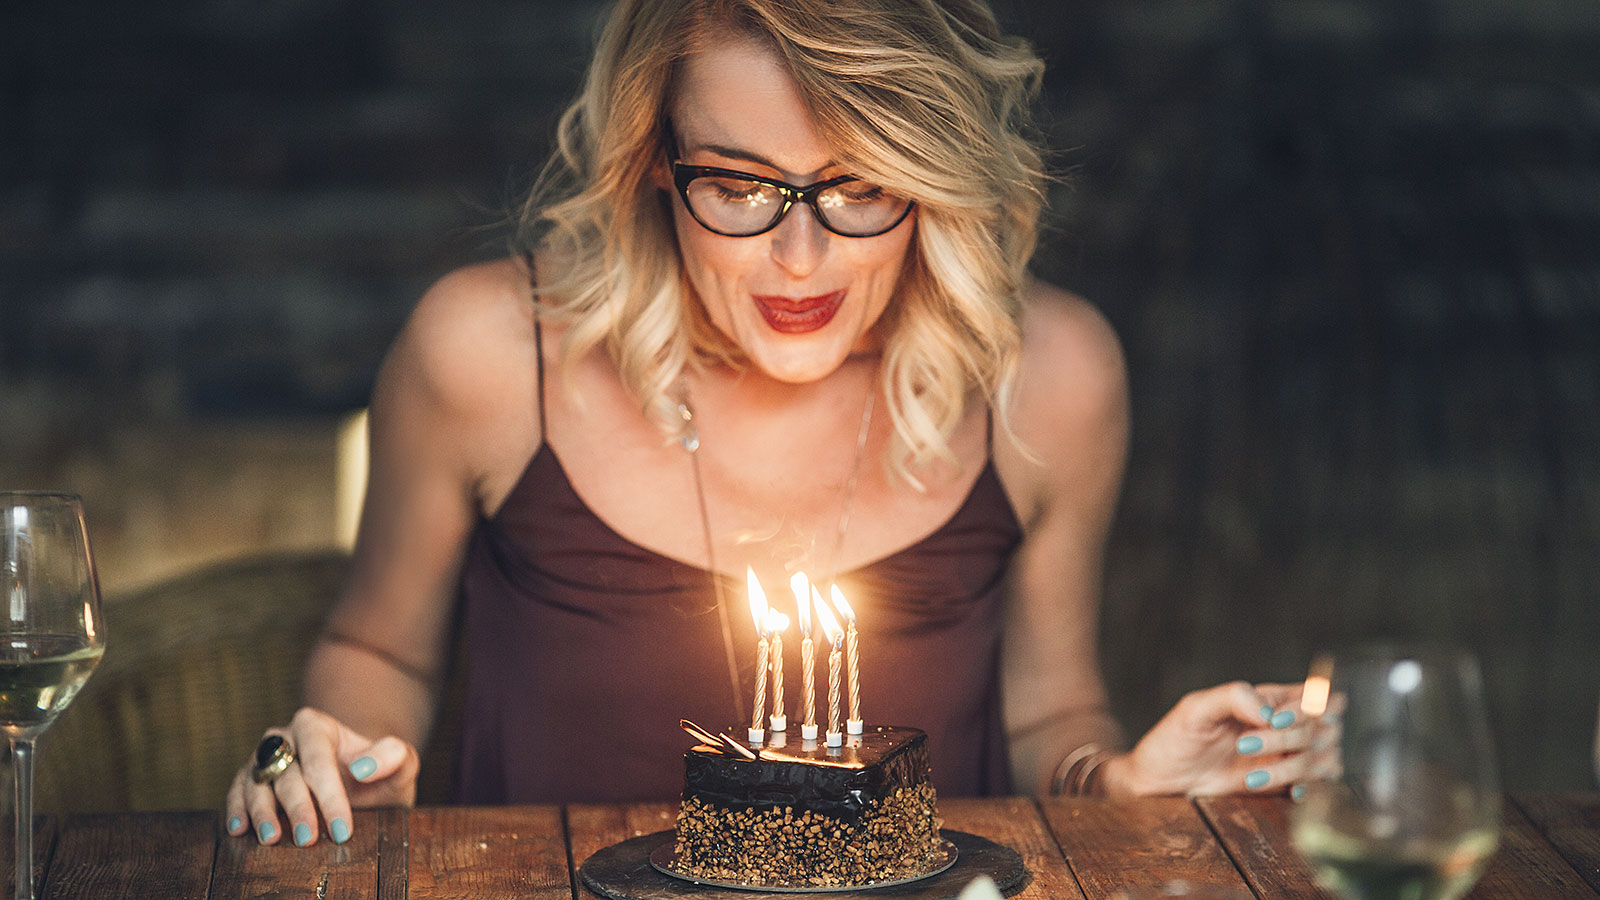 How to use your birthday as a motivational fresh start